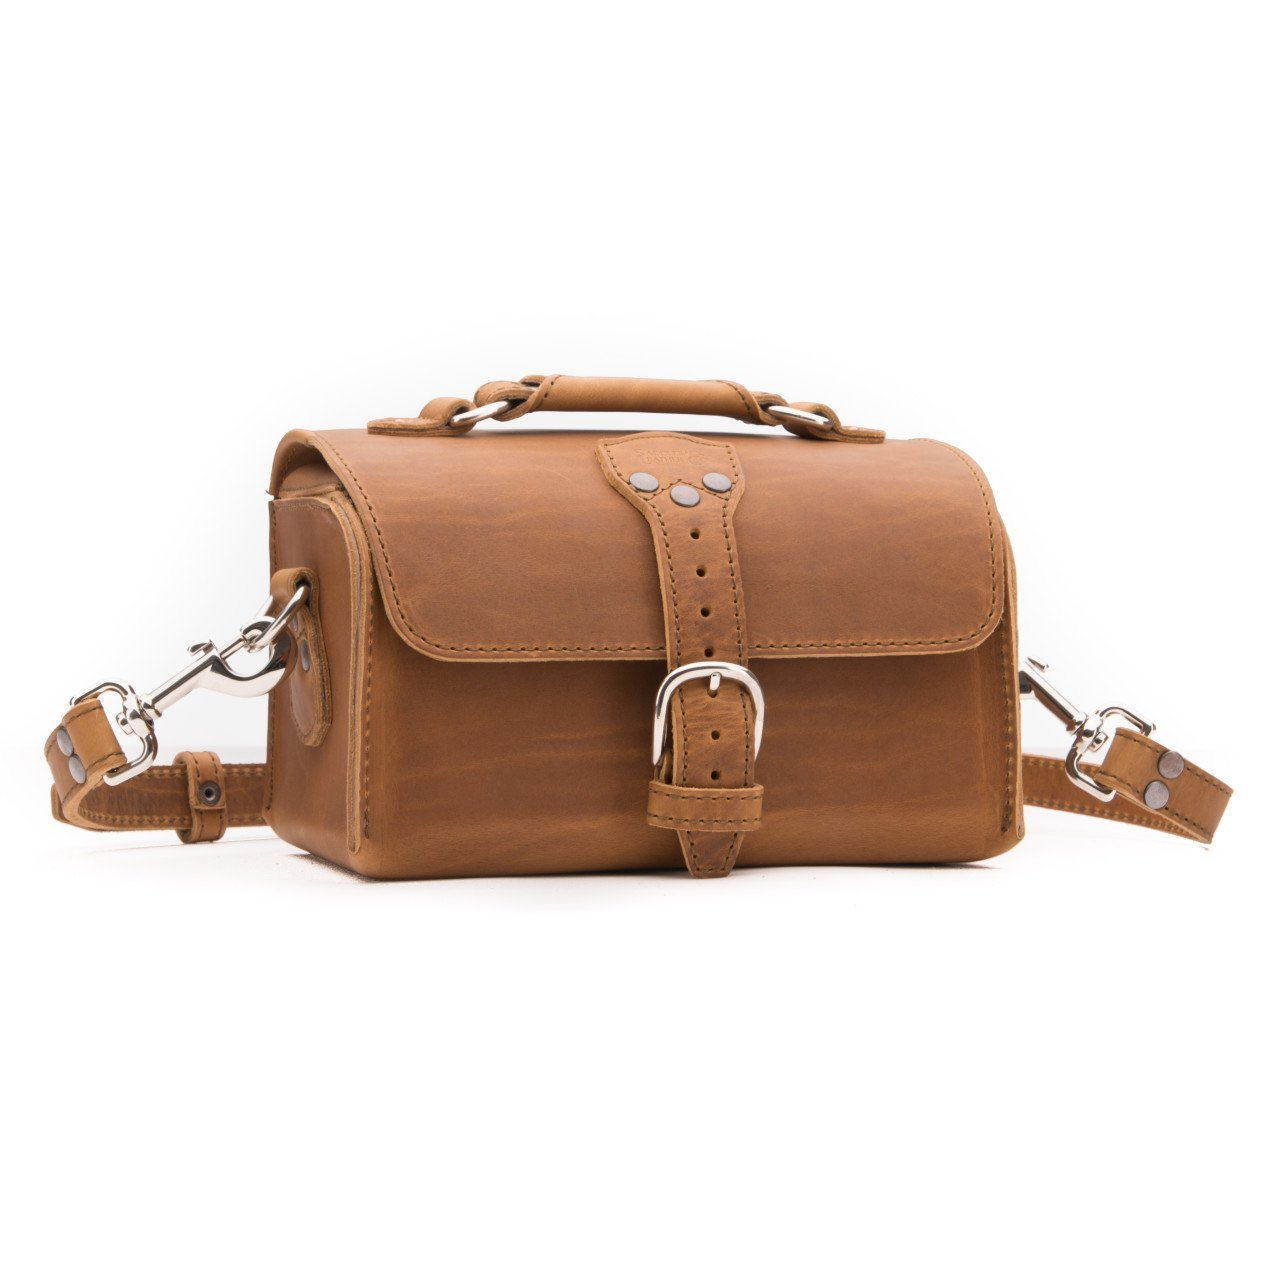 Saddleback Leather Travel Case in Tobacco by Saddleback Leather Co.